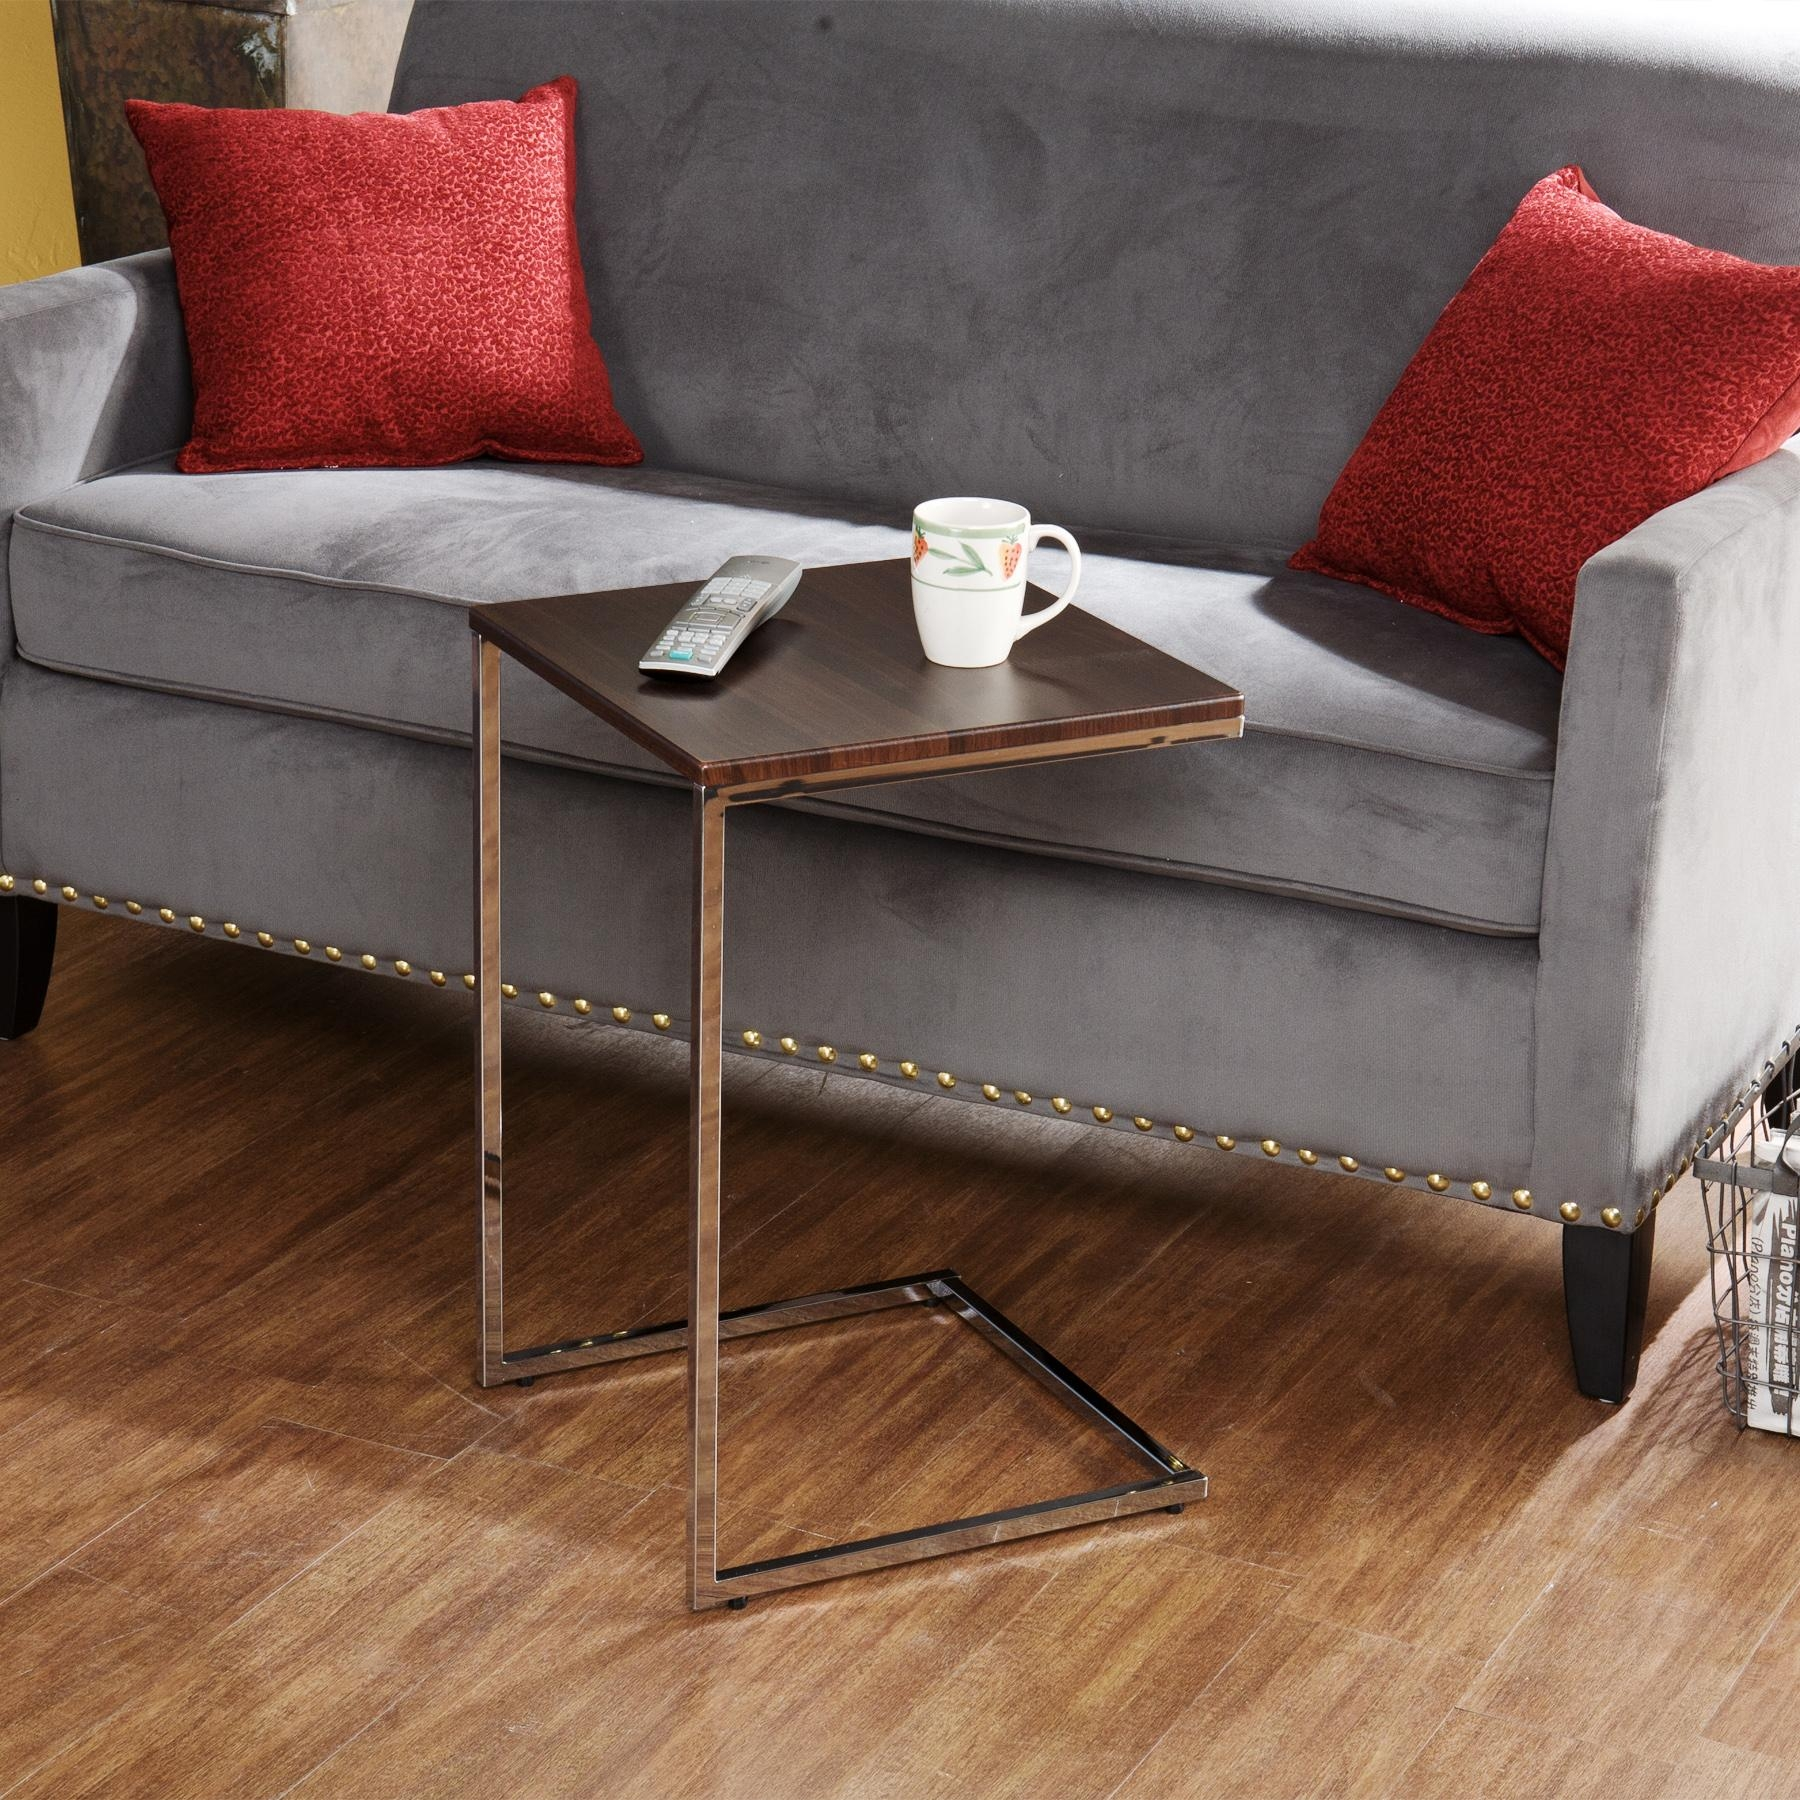 Slide Under Sofa Tv Trays | Centerfieldbar With Regard To Sofa Snack Tray Table (Image 12 of 21)